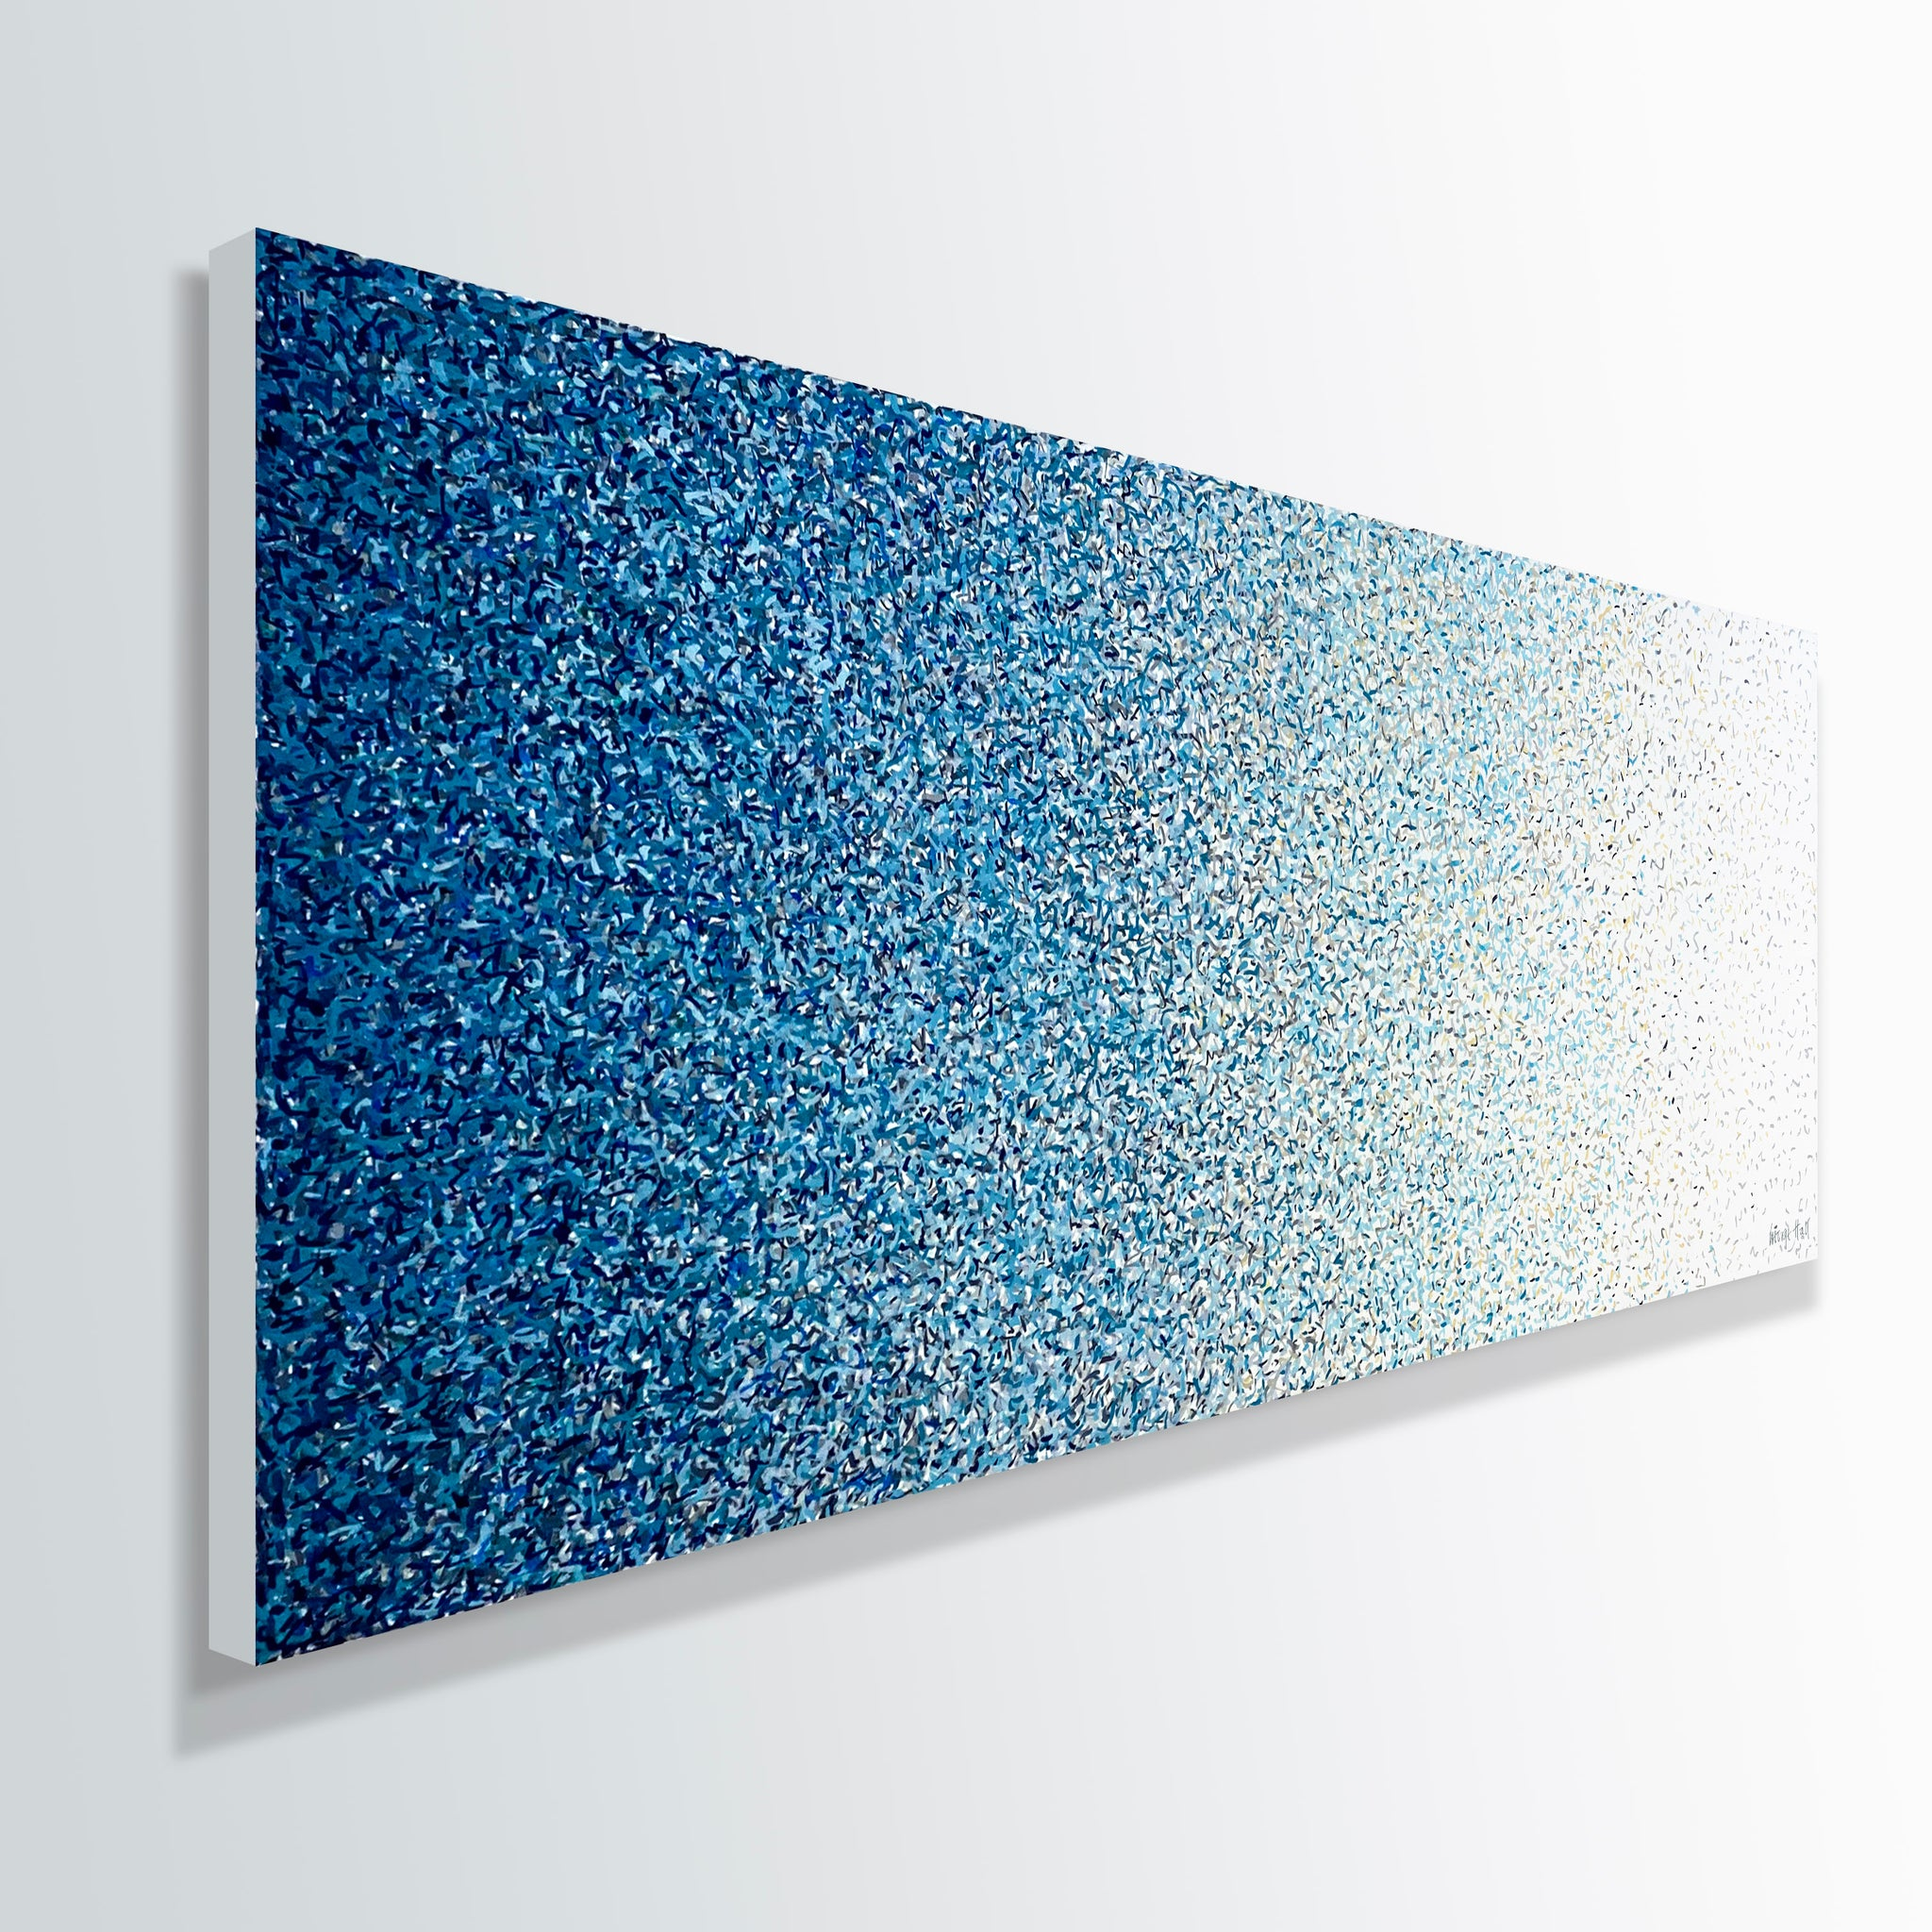 Freehand Shore 152cm x 60cm acrylic paint on canvas